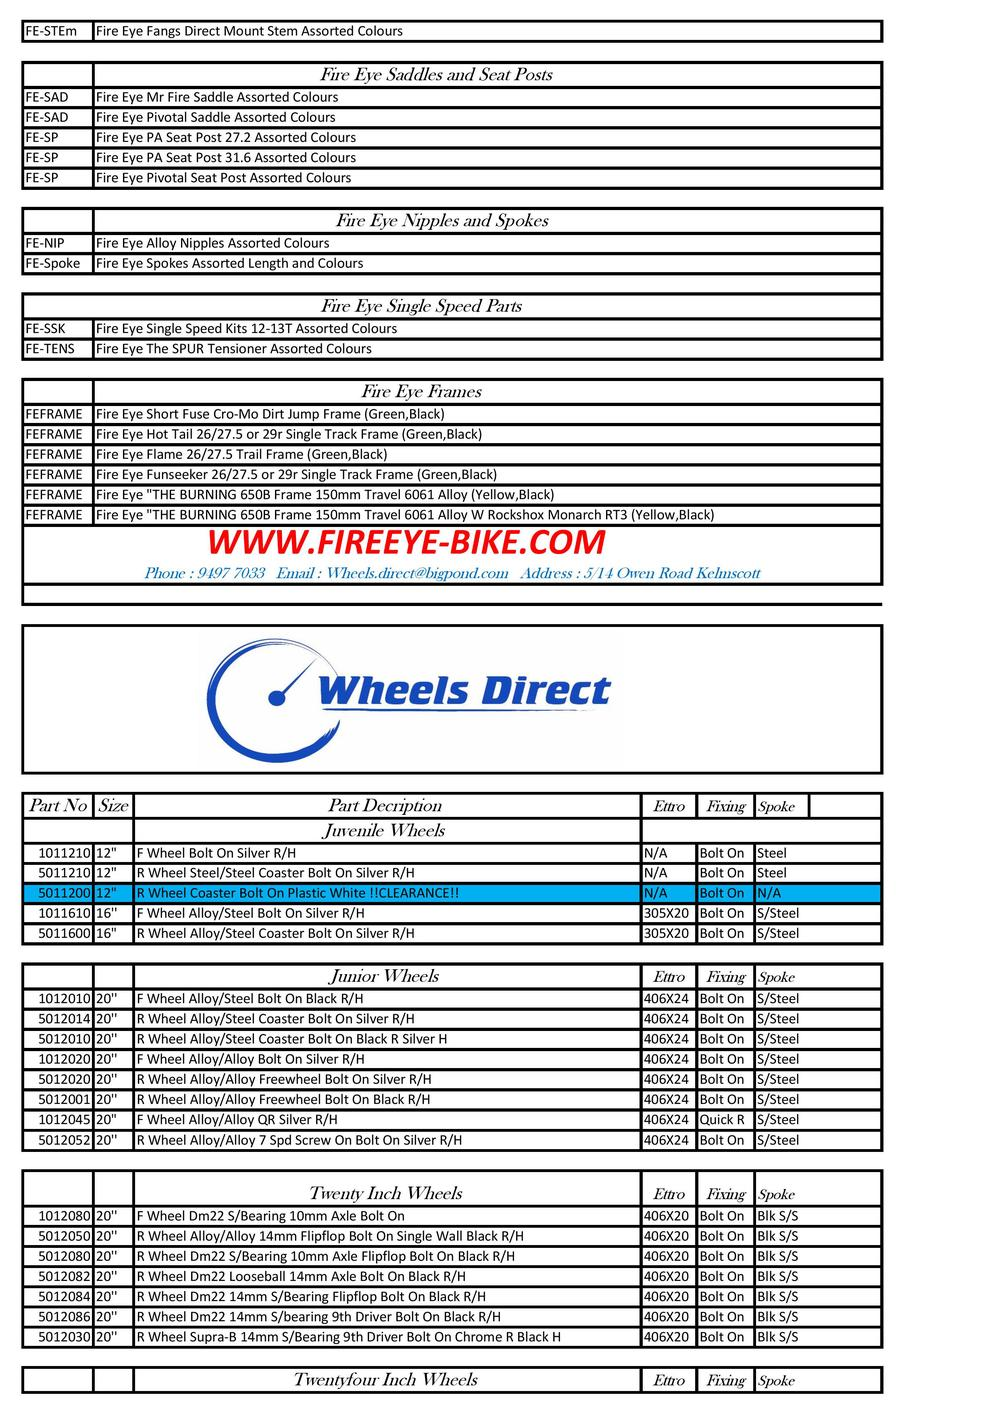 Wheels Direct Price List 2014internet stock listing1-page-002.jpg